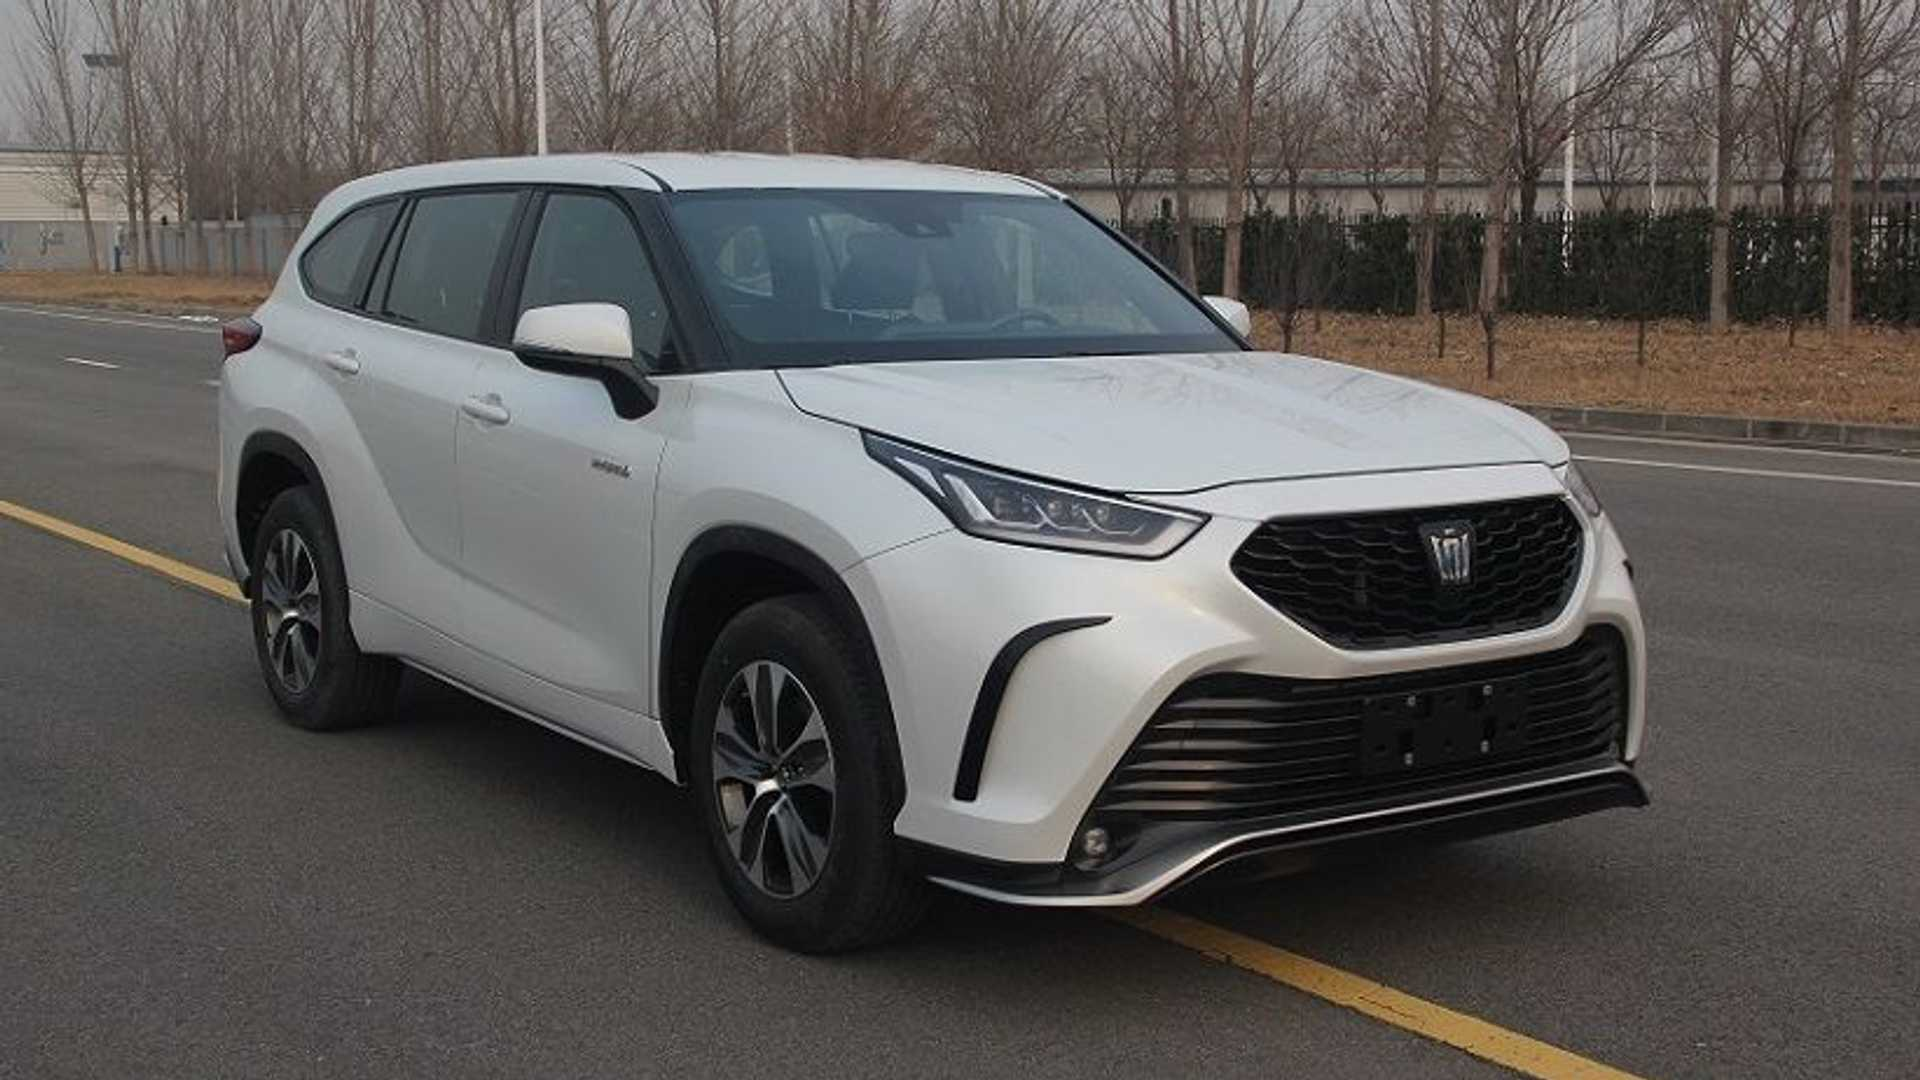 2022 Toyota Crown SUV Makes Early Debut And It Looks Familiar